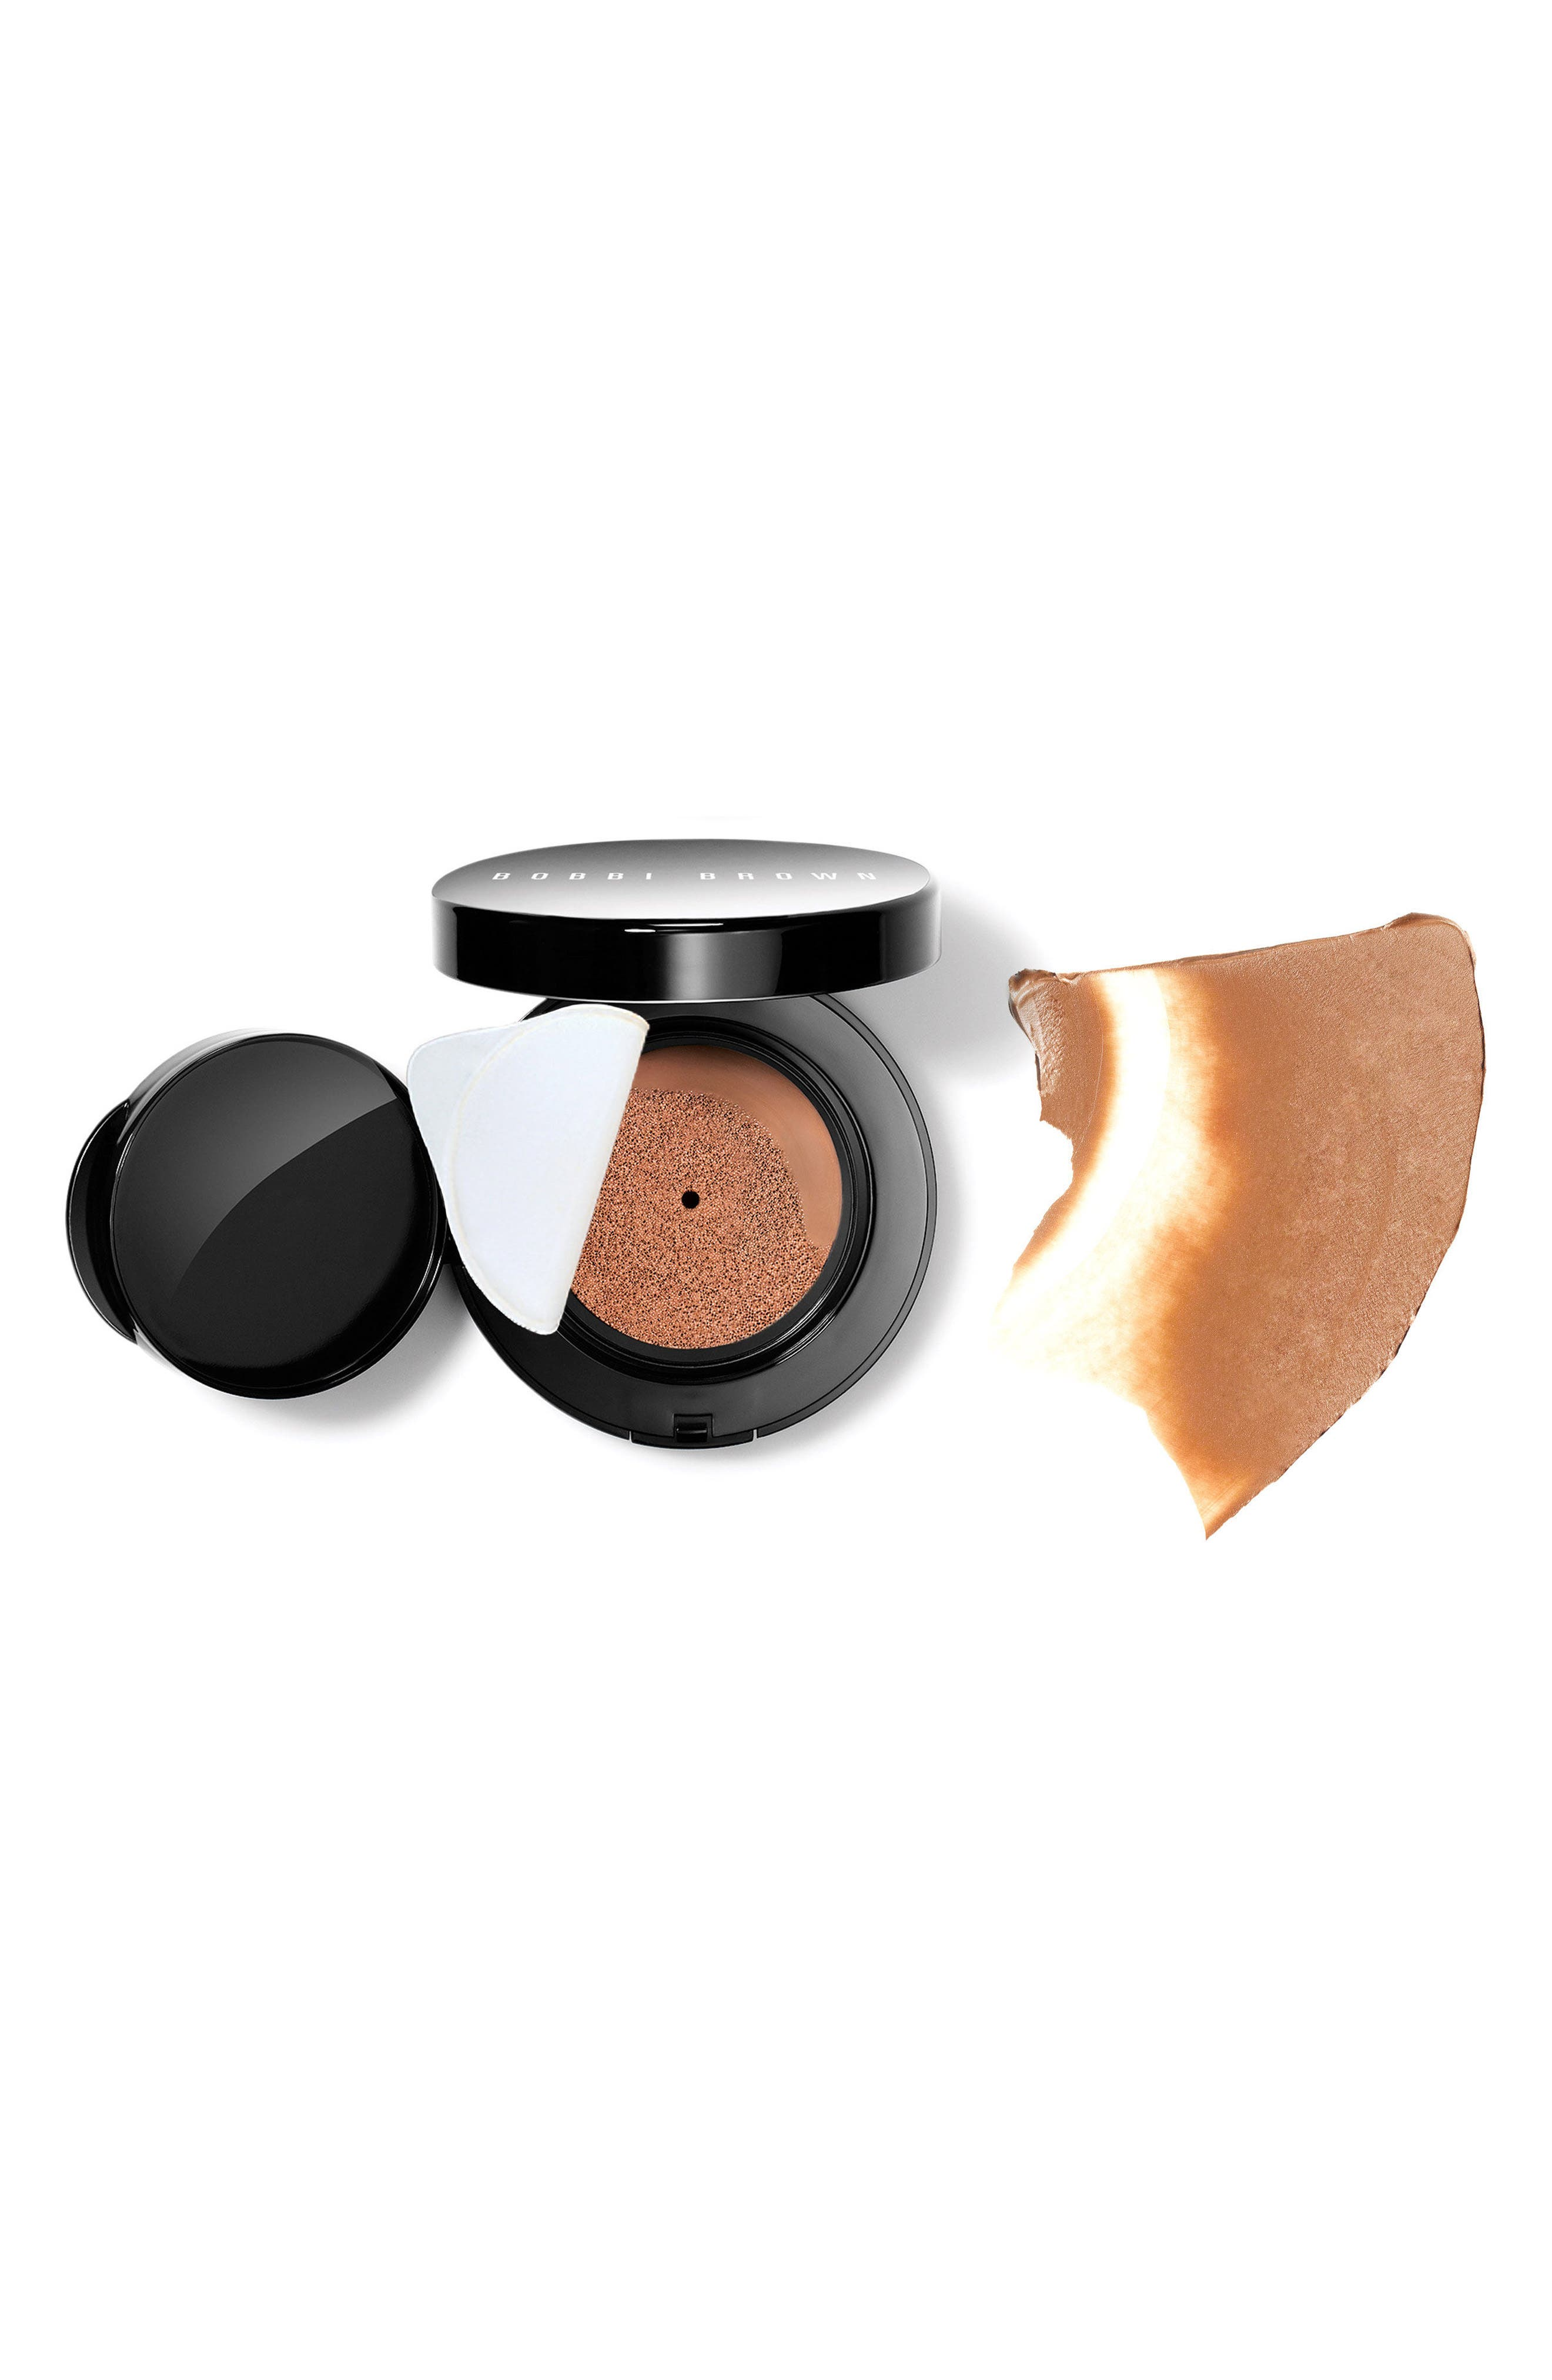 Skin Foundation Cushion Compact SPF 35,                             Alternate thumbnail 3, color,                             200